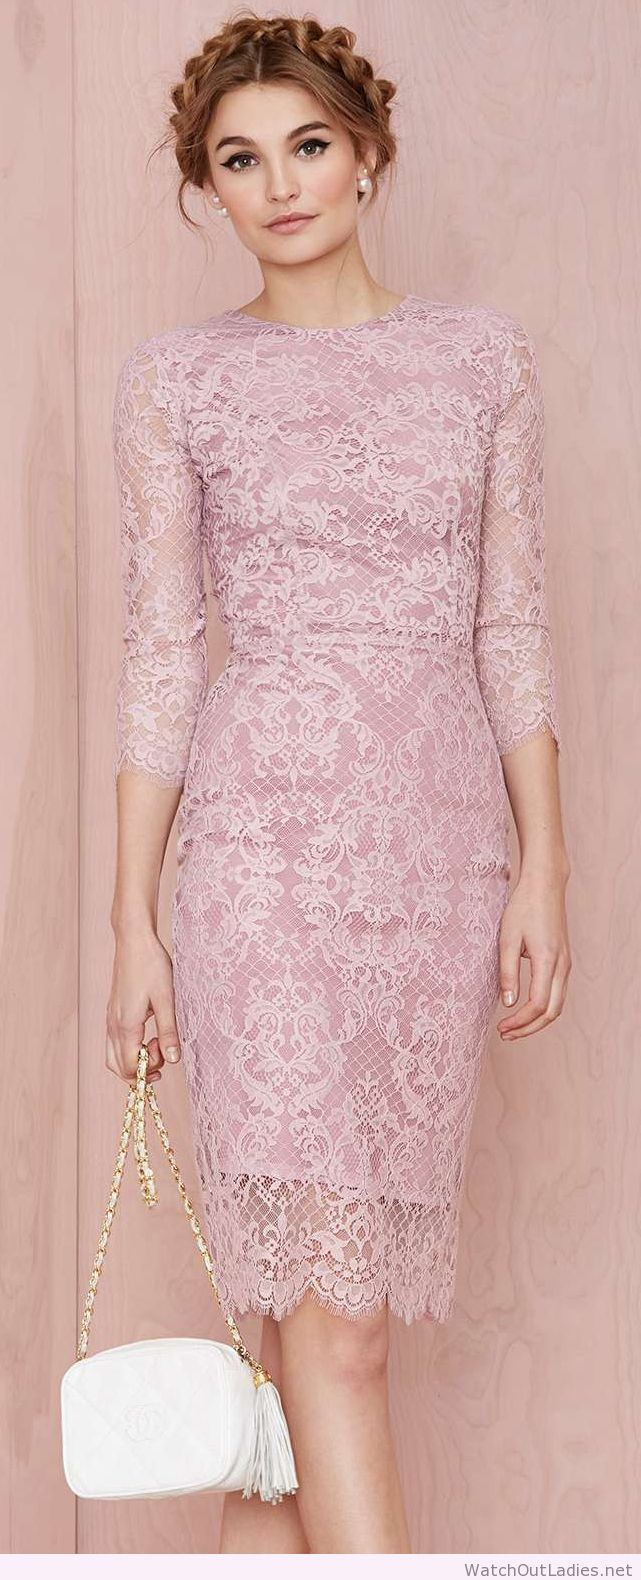 Pink pencil dress | watchoutladies.net | Pinterest